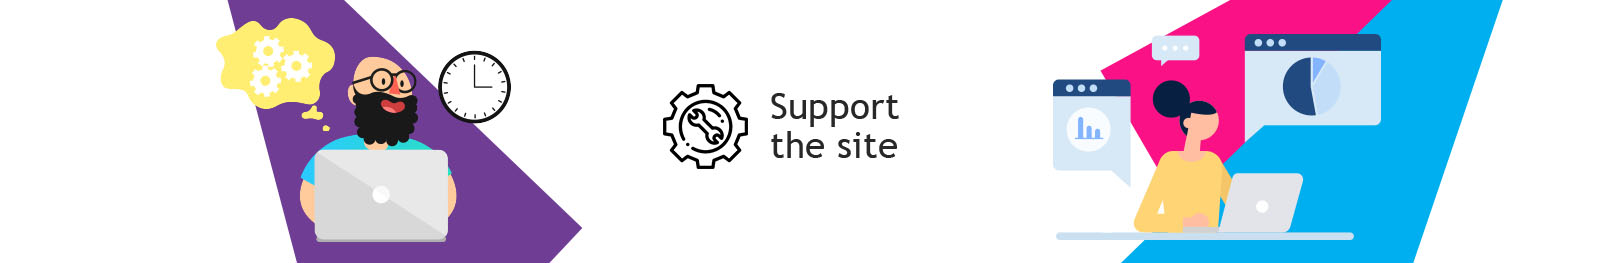 Site Support. Technical support of the site. Technical support services site